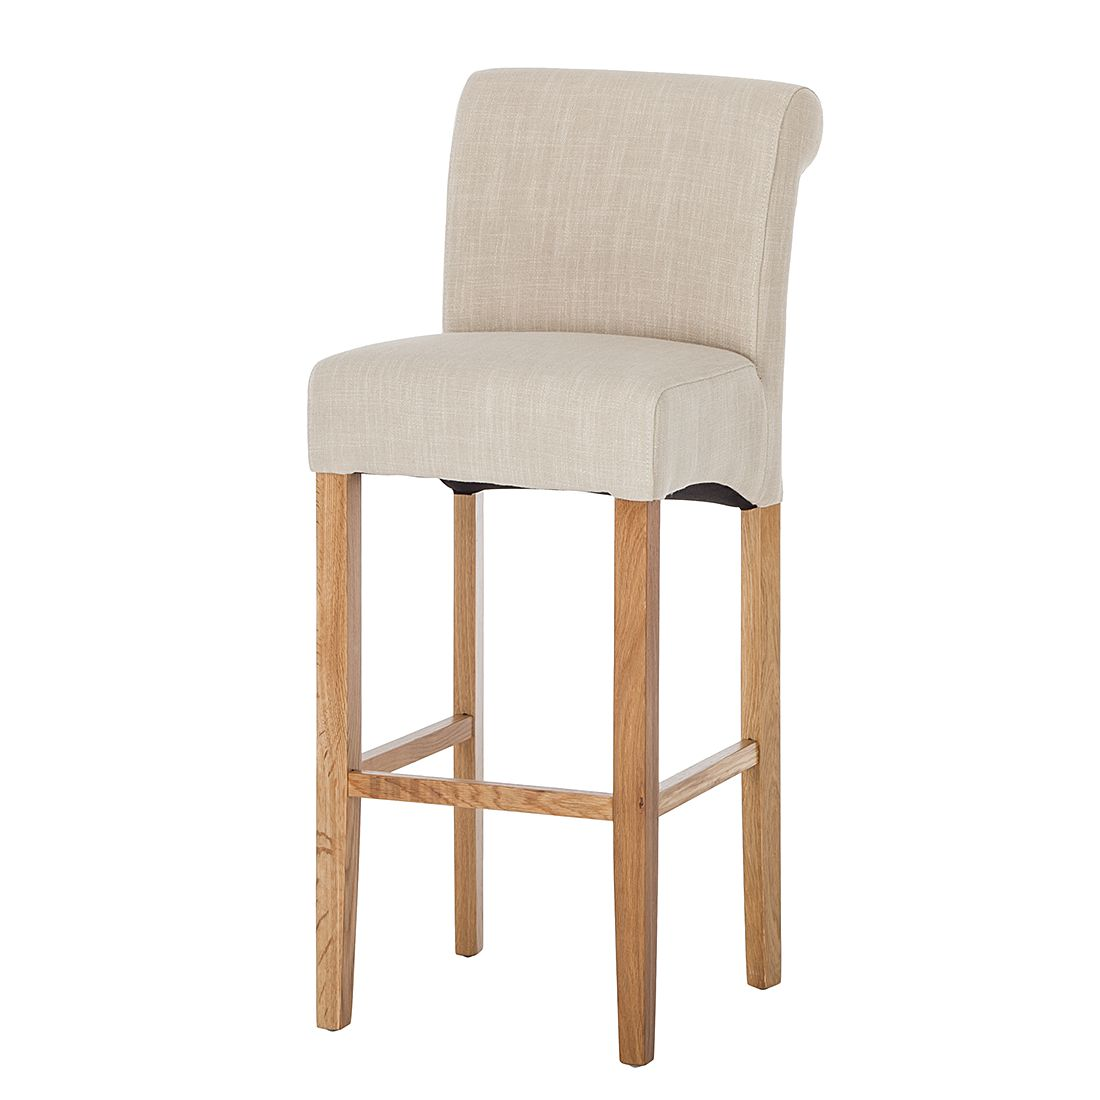 Barhocker reno webstoff beige ars natura g nstig for Barhocker shop